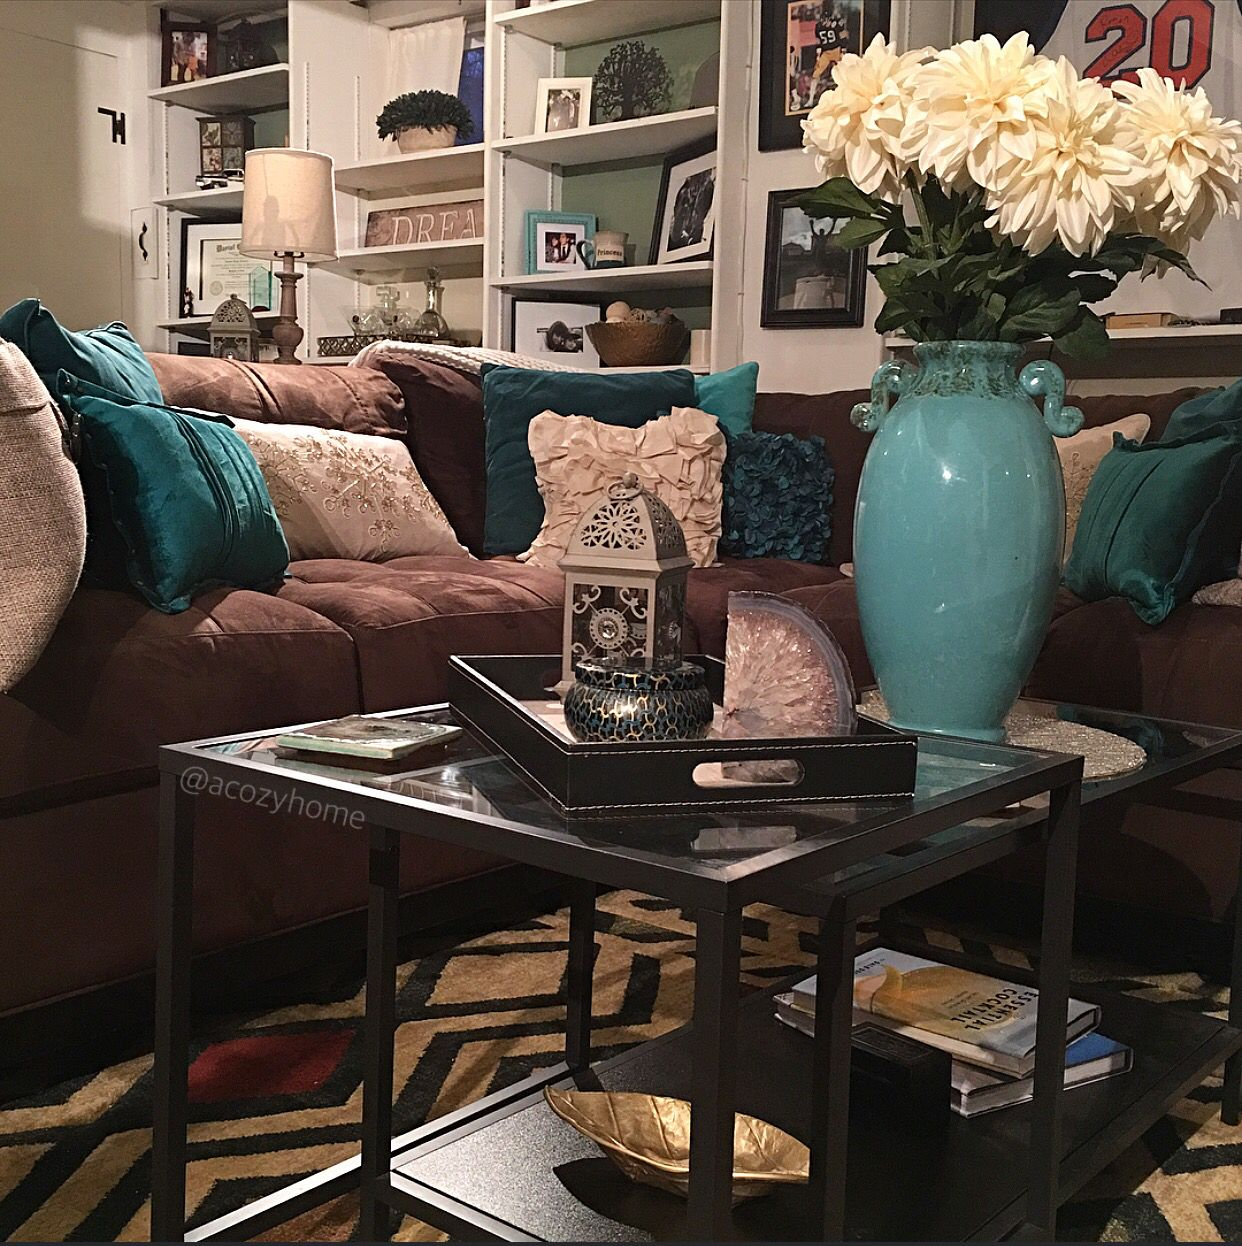 Superieur Cozy Brown Couch With Teal Accents, Turquoise And Brown, Built In Shelves,  Ikea Nesting Table #acozyhome